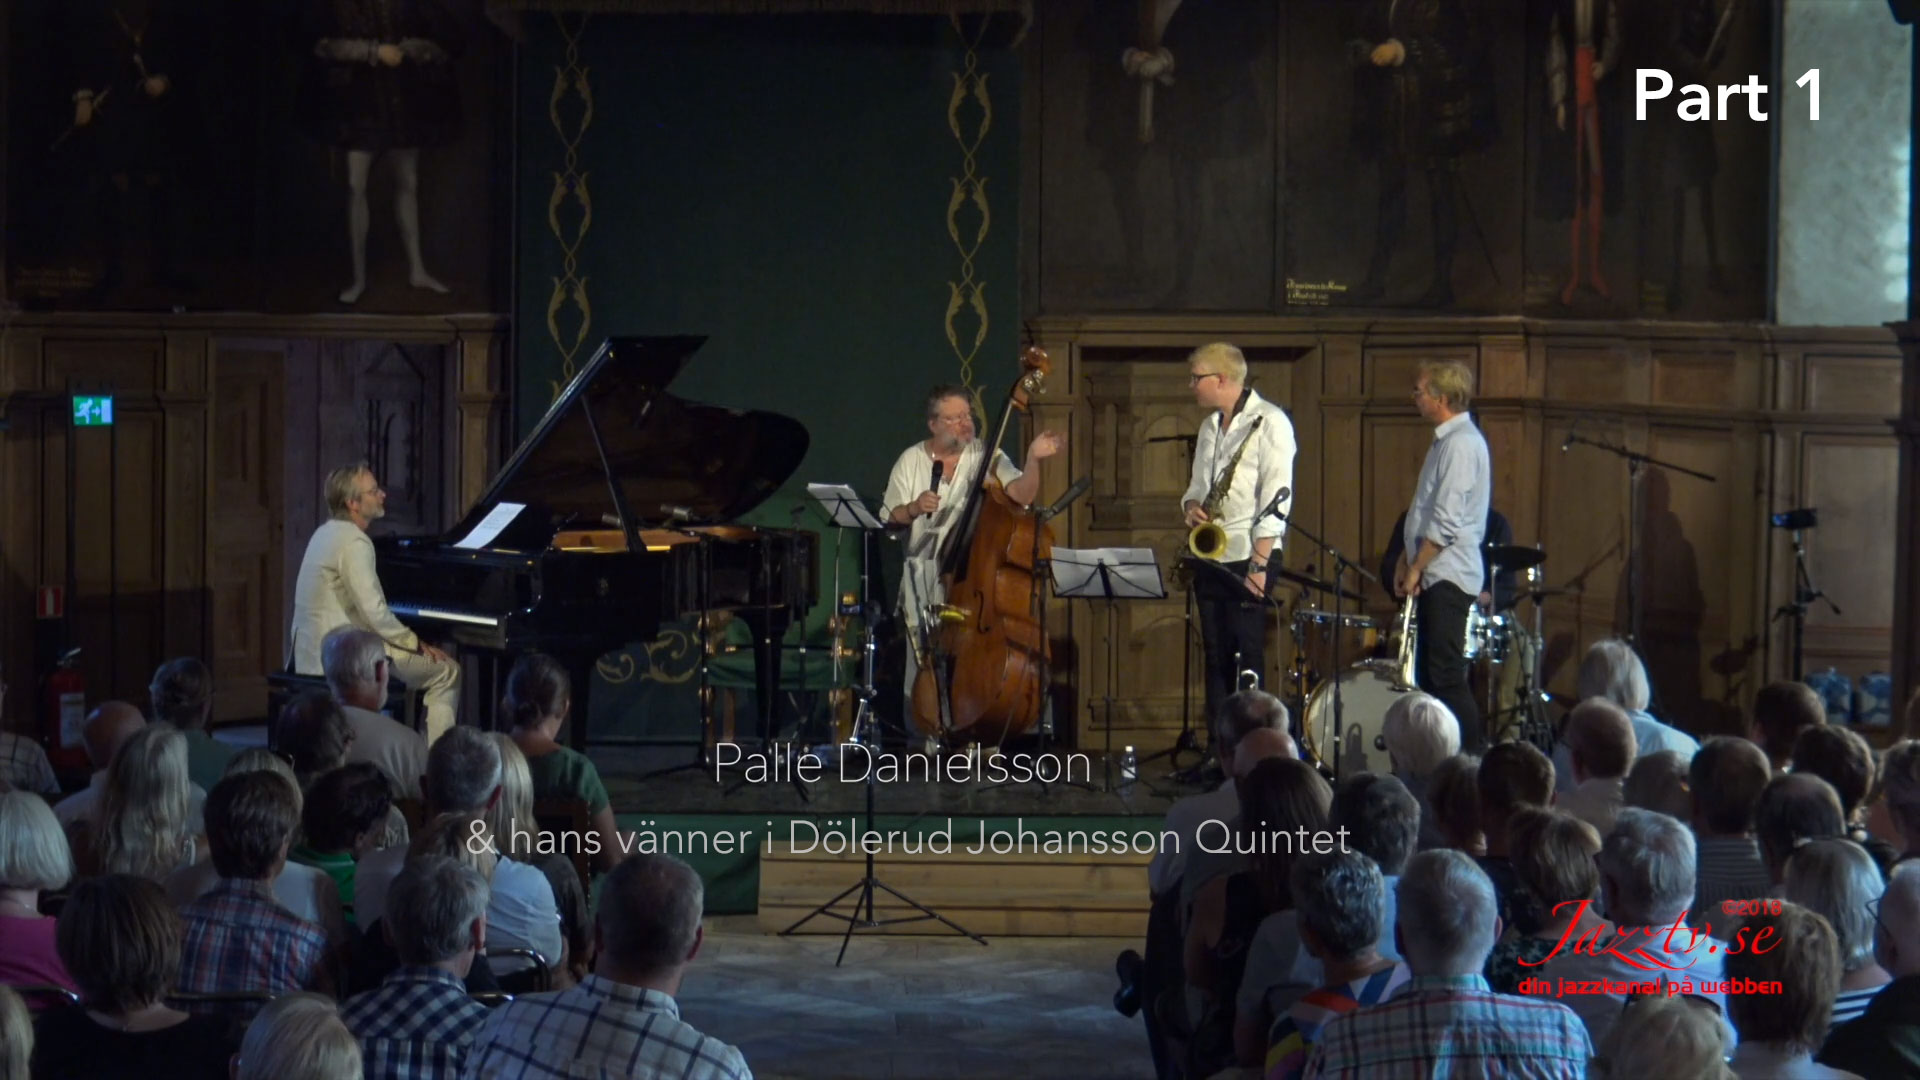 Palle and his friends in Dölerud Johansson Quintet - Part 1